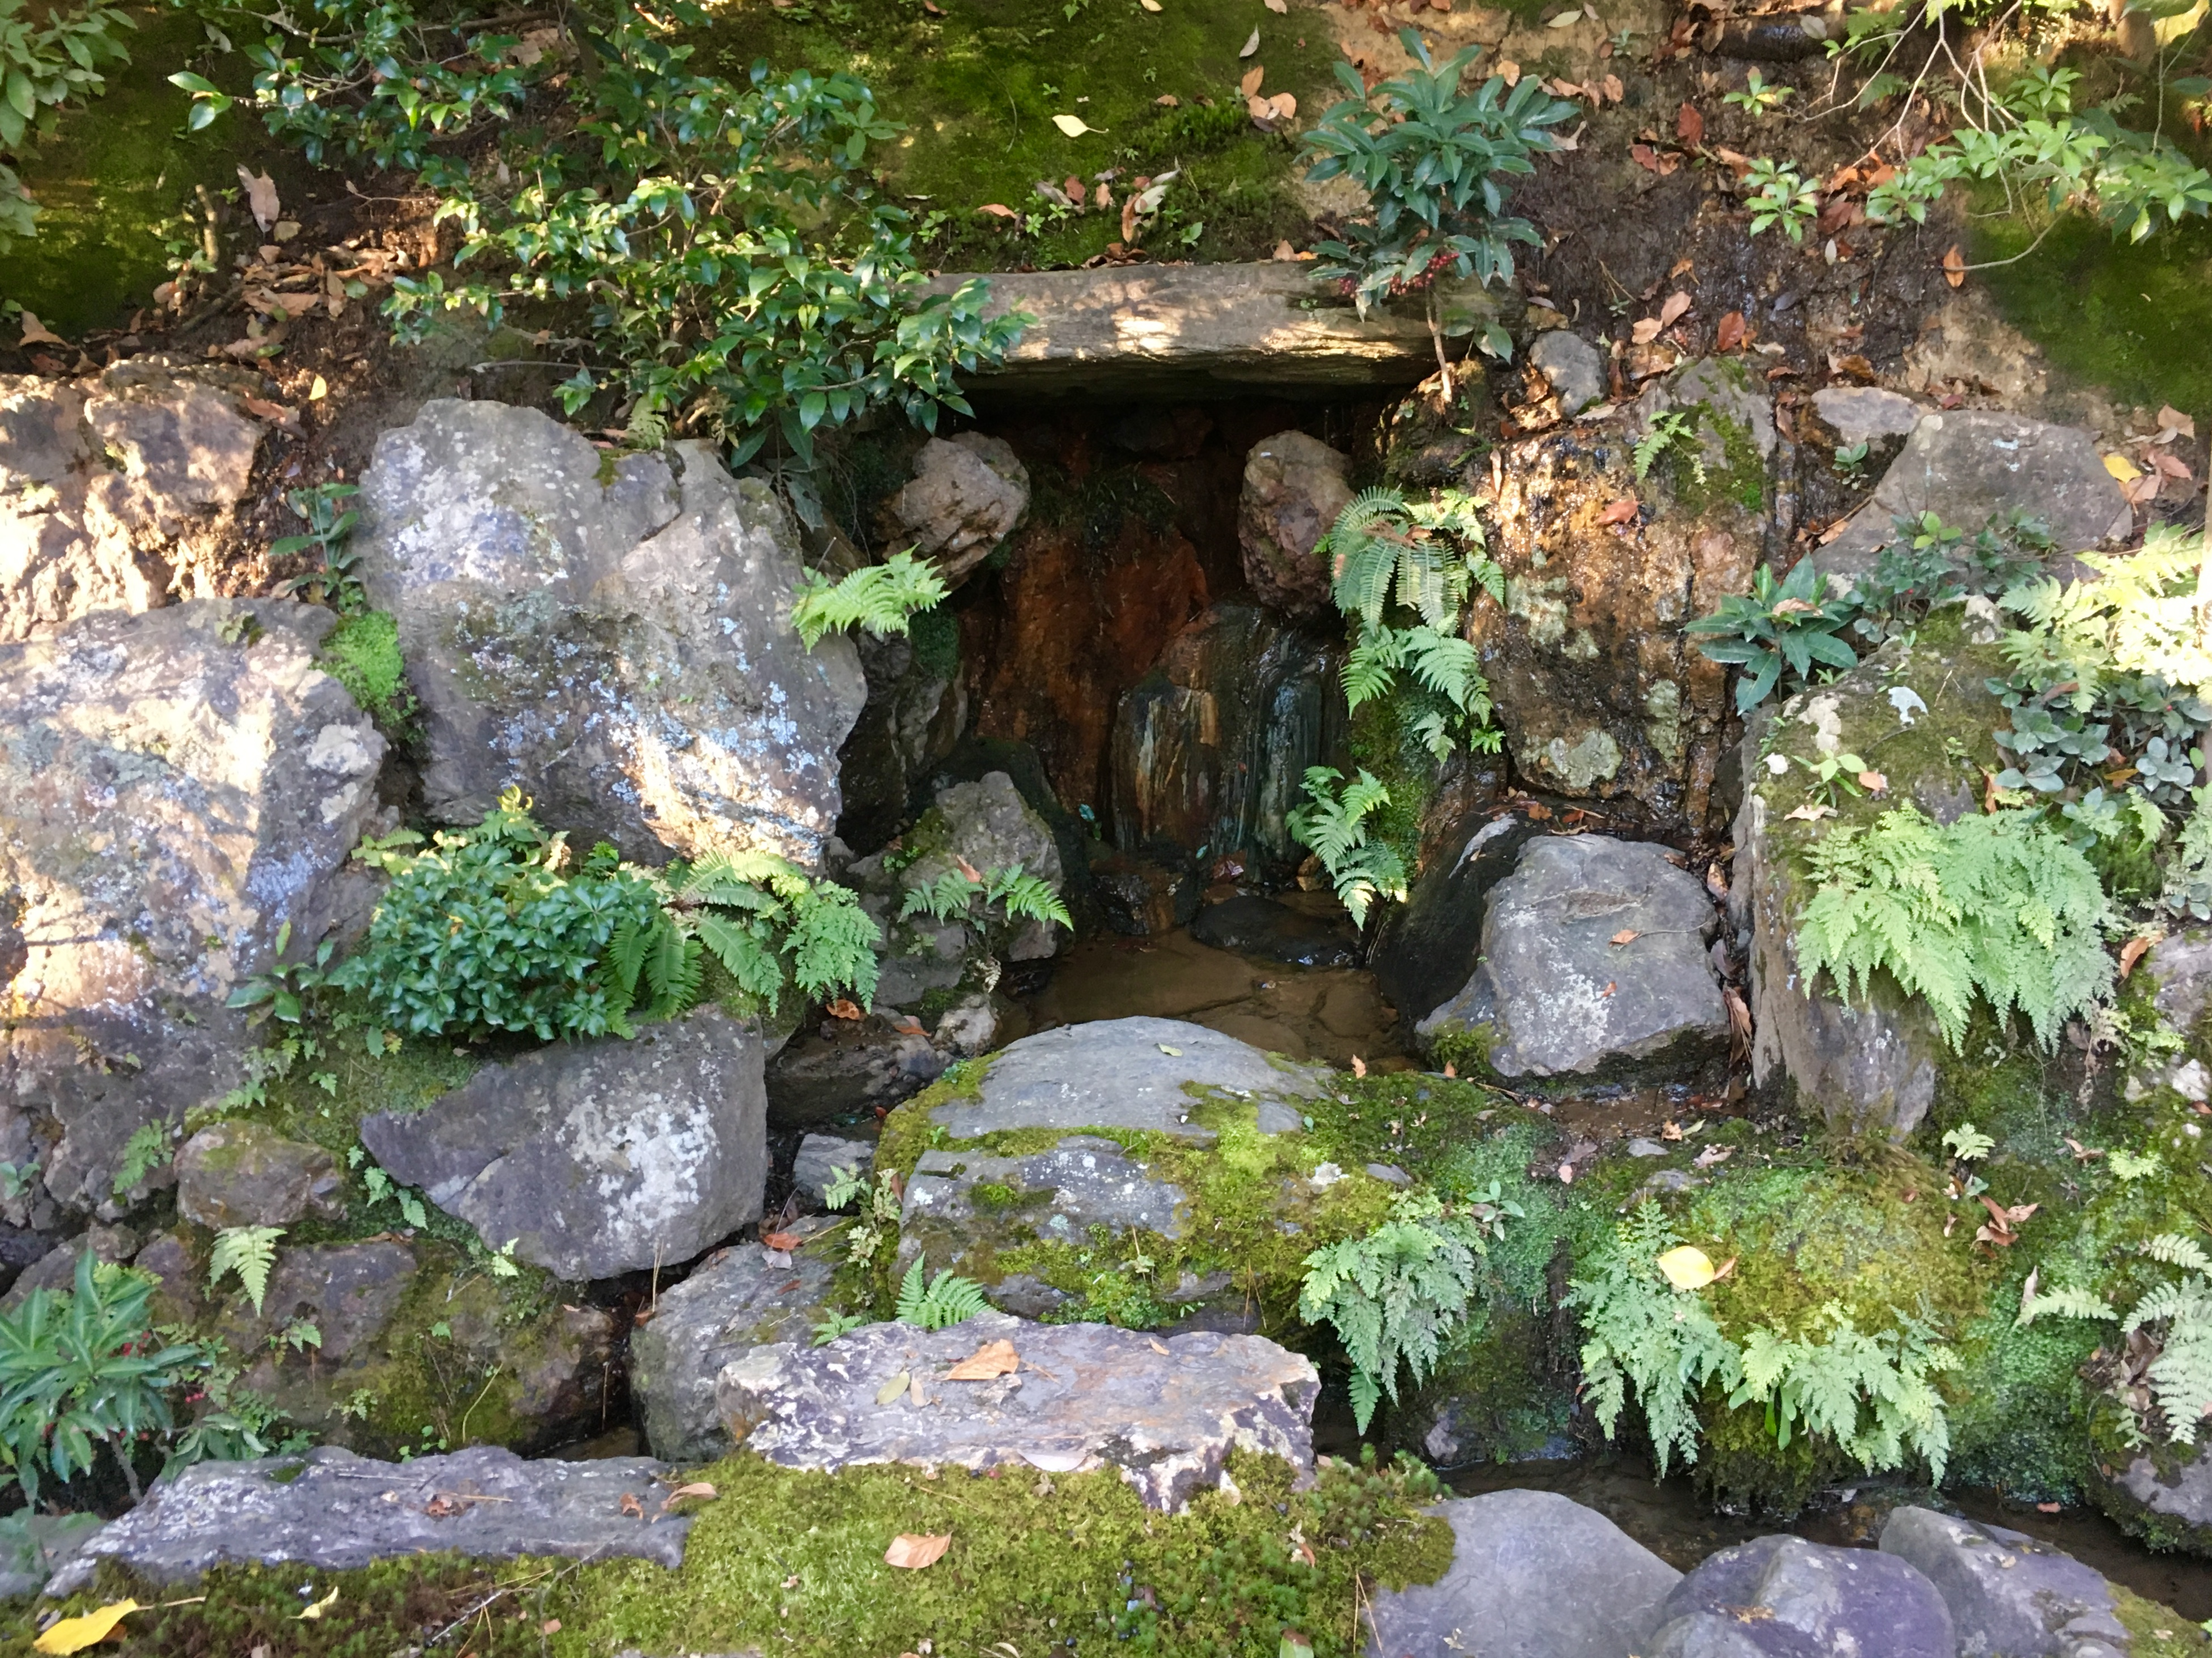 small waterfall surrounded by stones moss and leaves